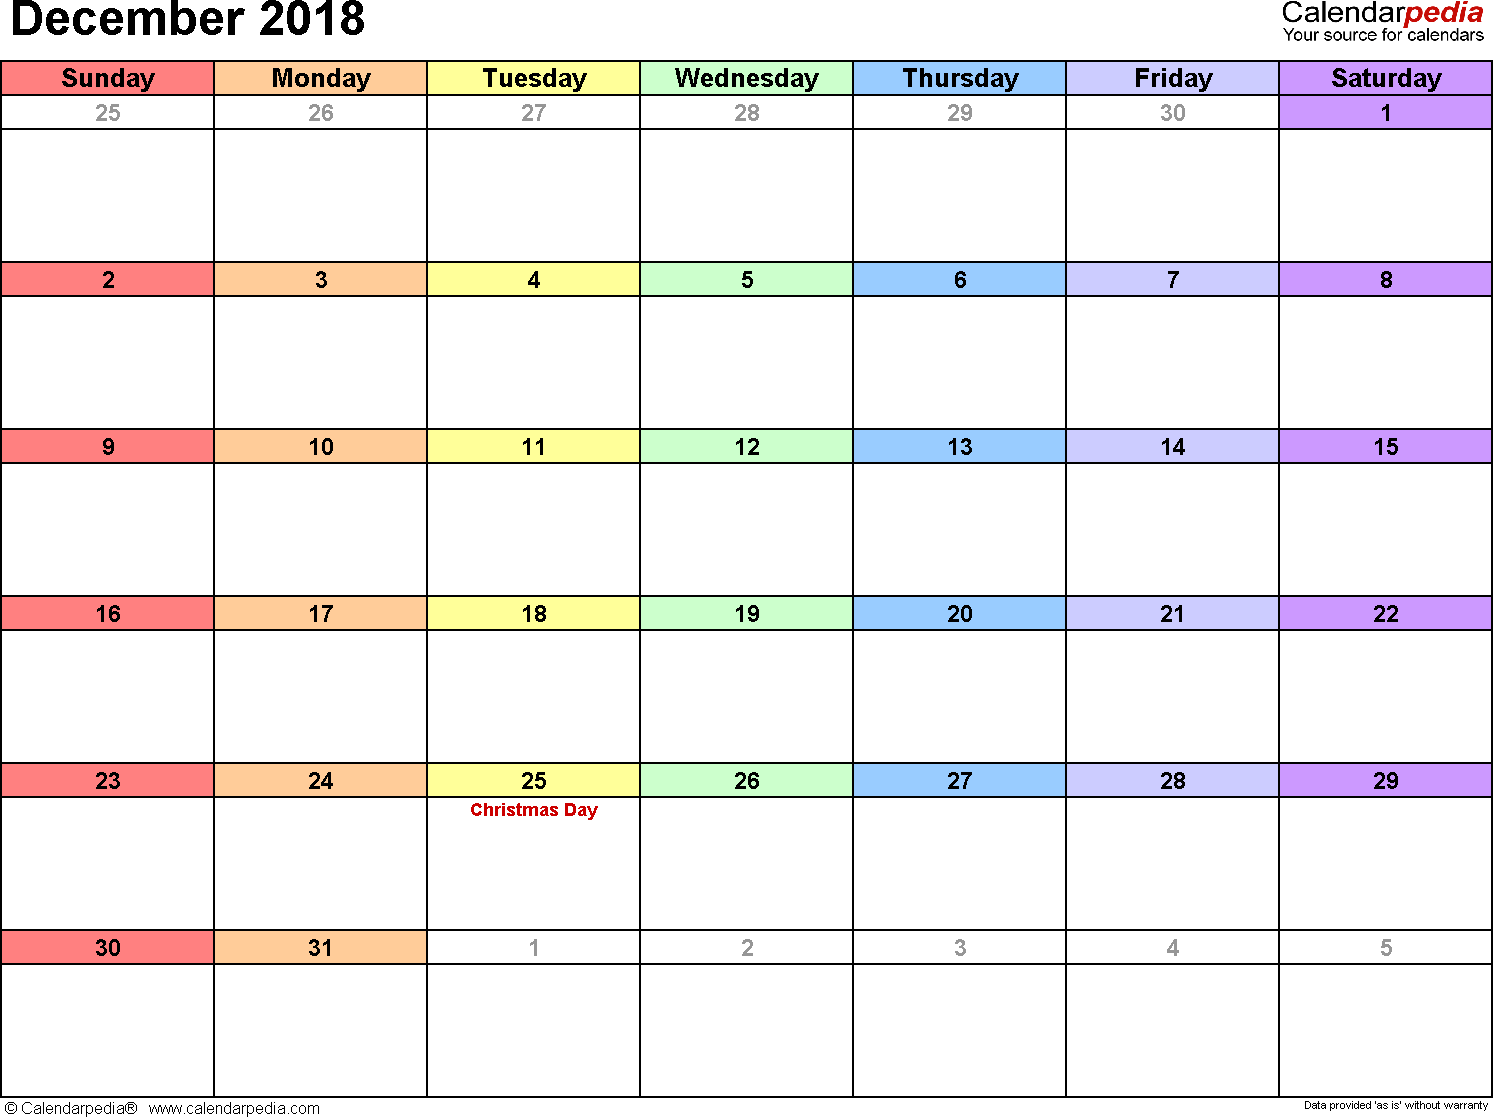 December 2018 Calendars for Word, Excel & PDF